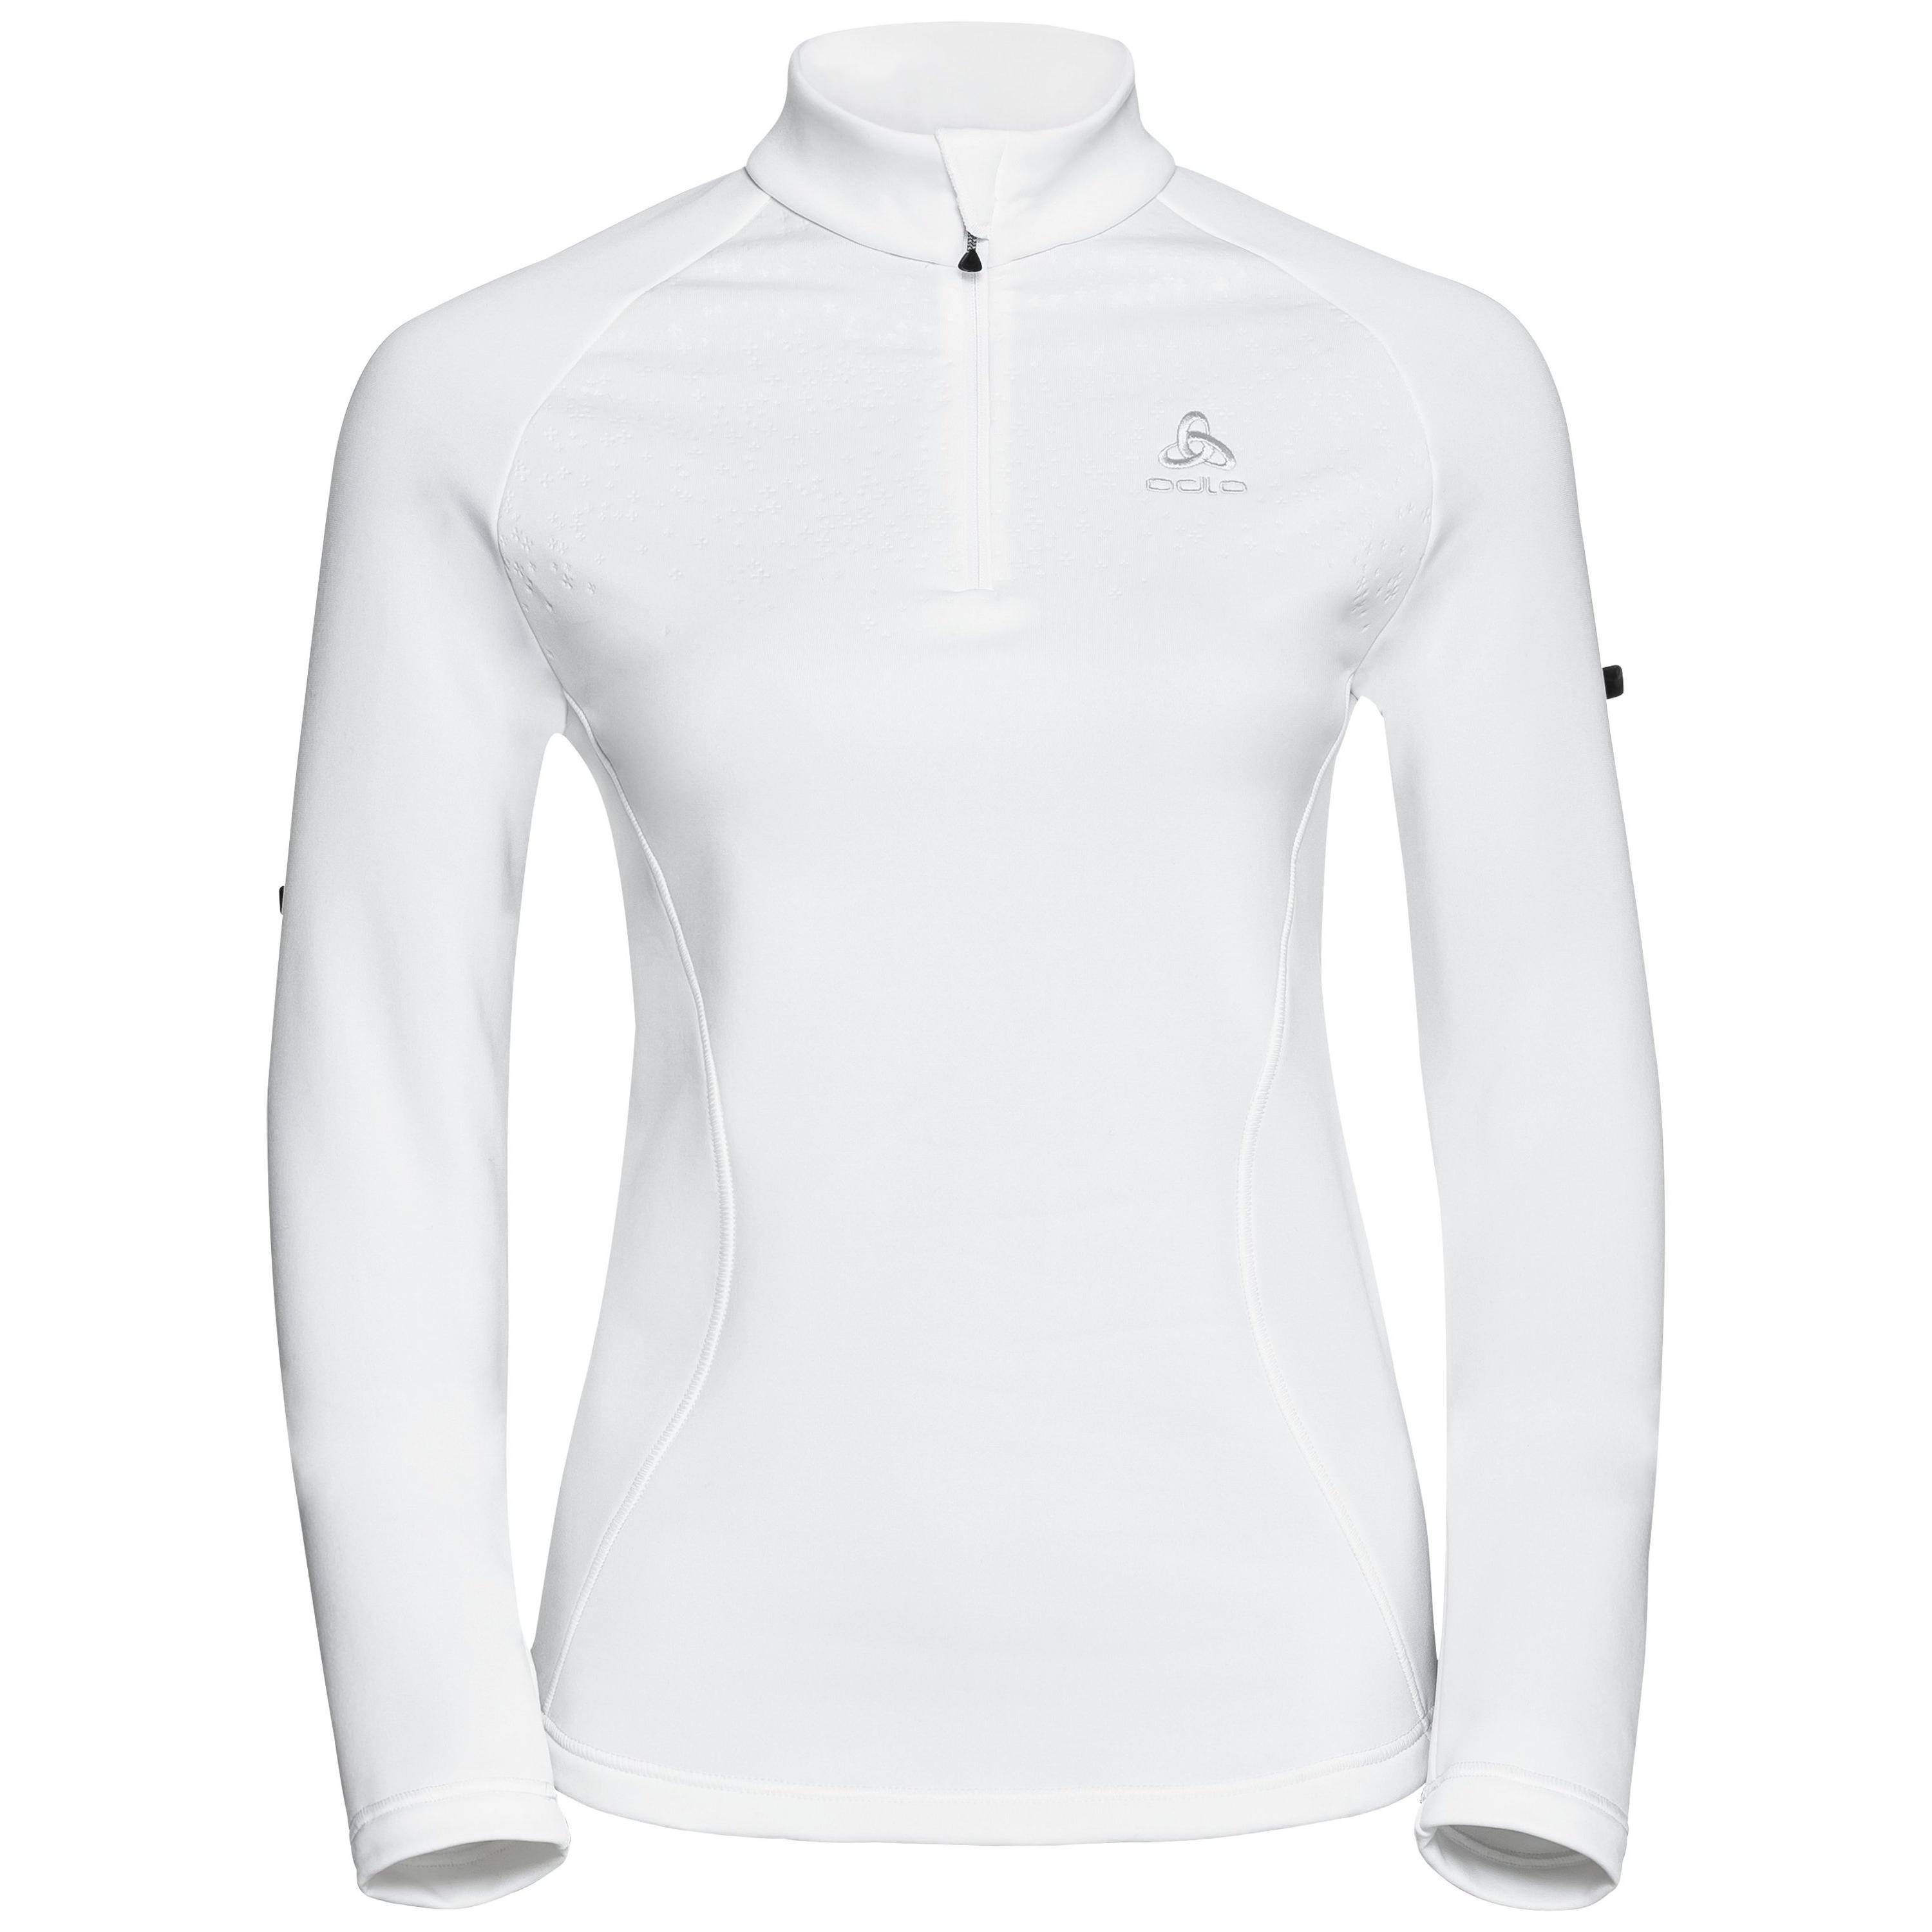 Odlo Pull couche intermédiaire 1/2 zip GLADE white with print FW17 taille: XL